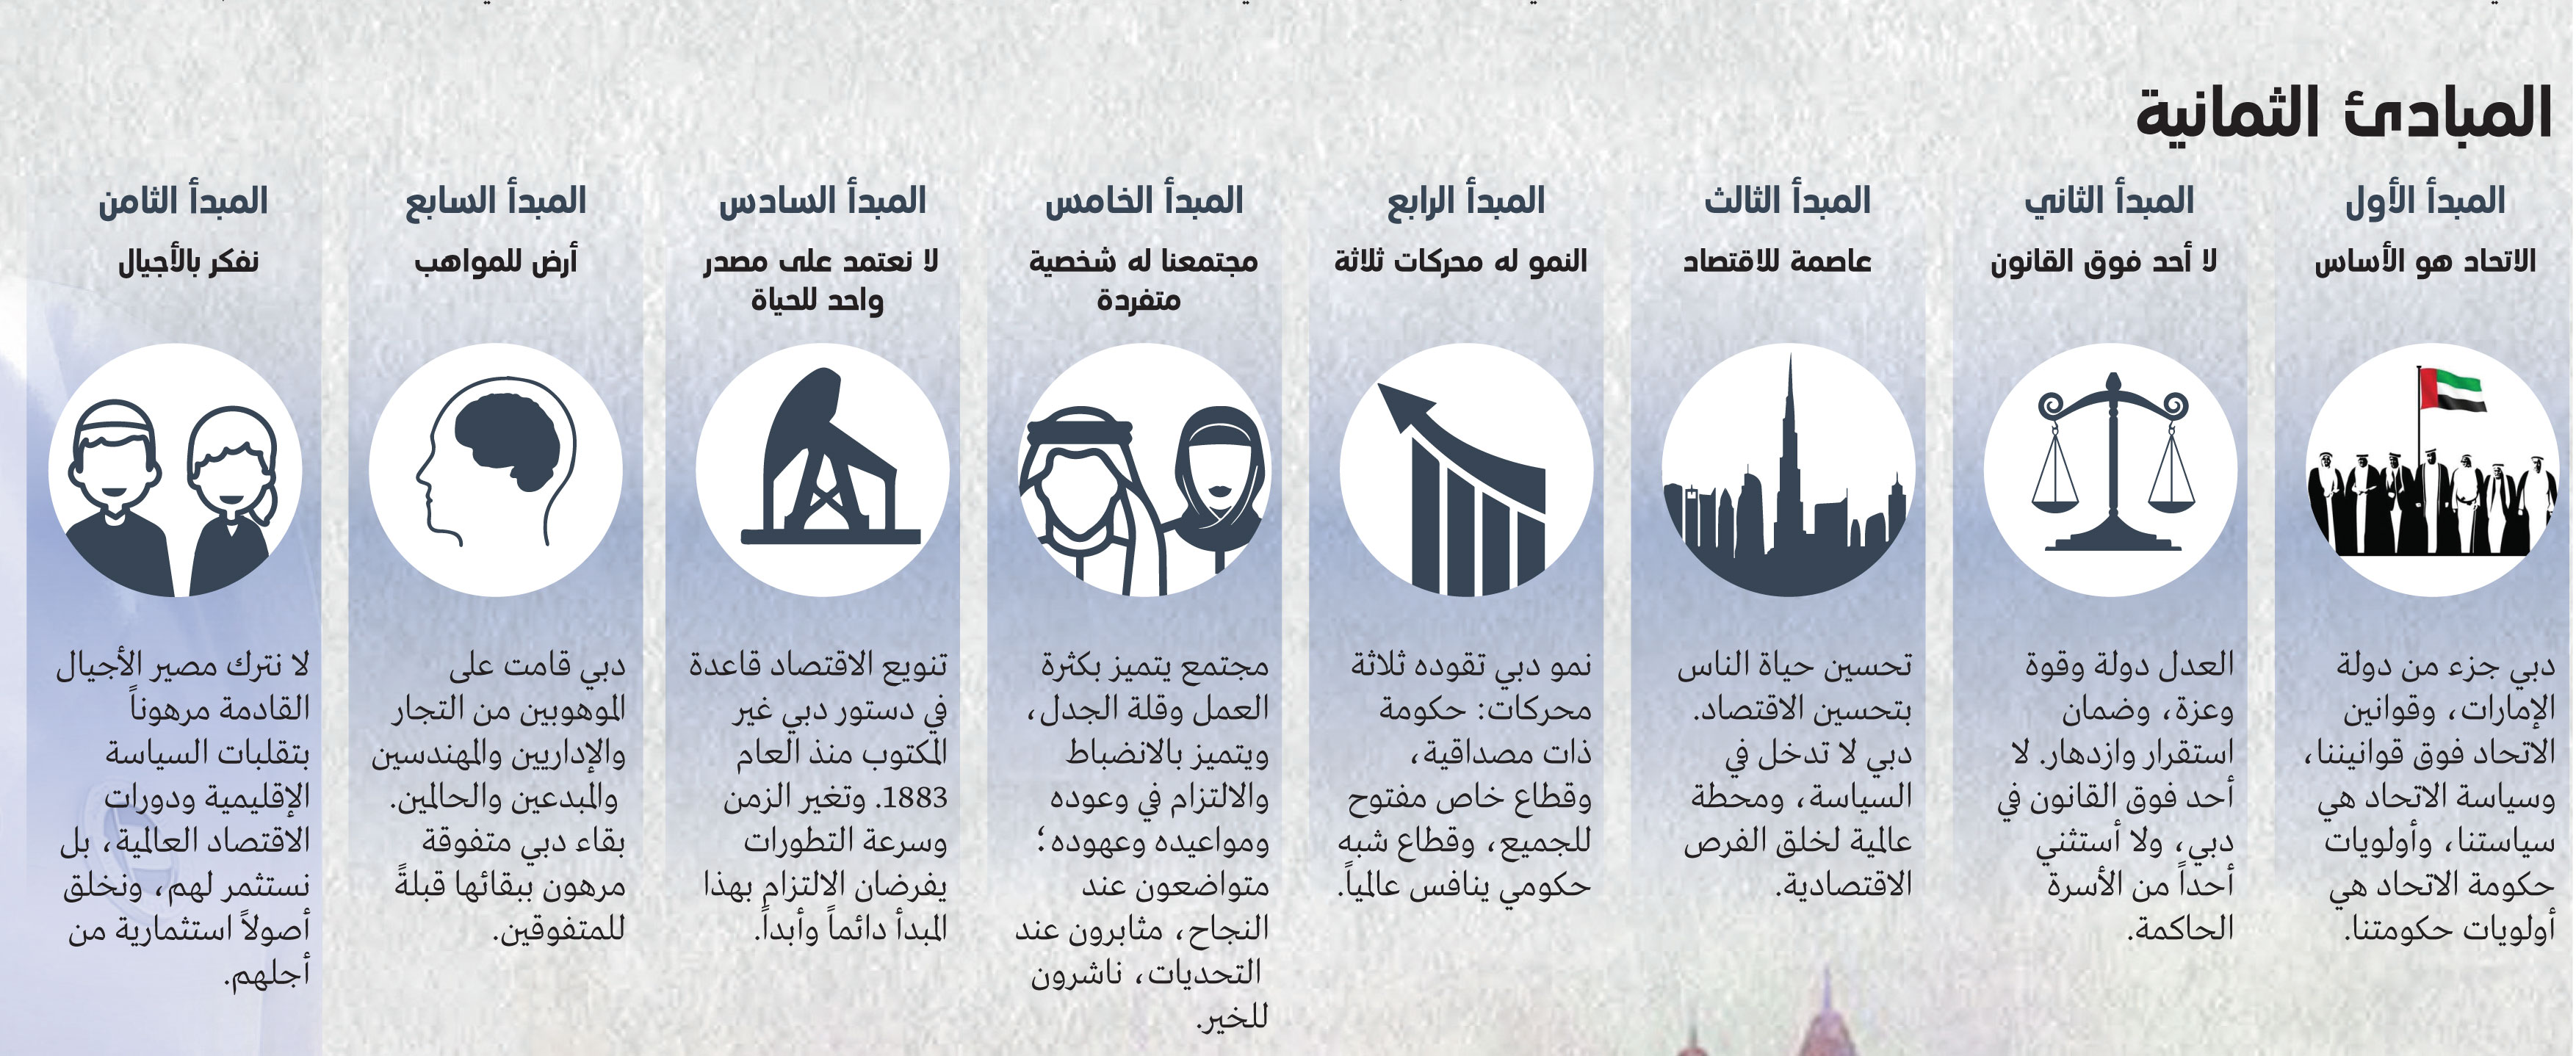 Has Announced Eight Principles For Governance And Government In Dubai He Recommended That All Those Responsible Abide By The Circumstances